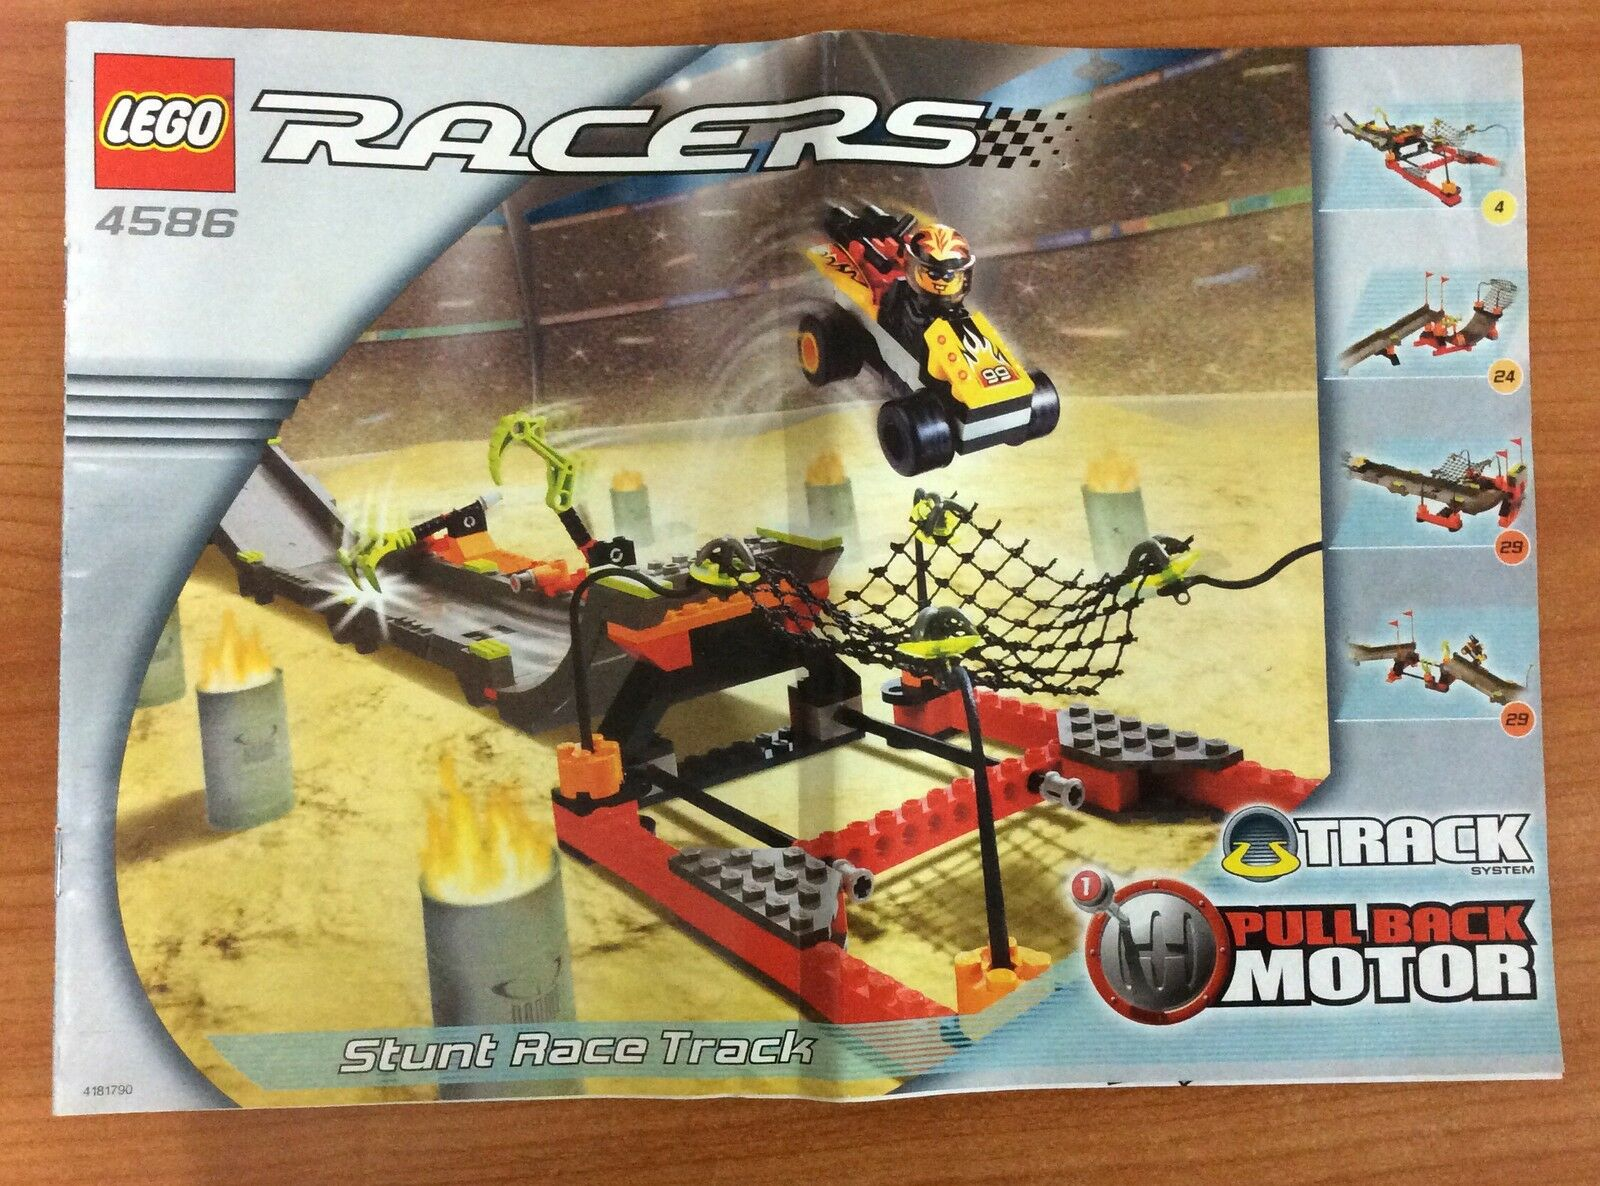 2002 Lego Racers Set 4586 - 100% Complete with Box & Instructions